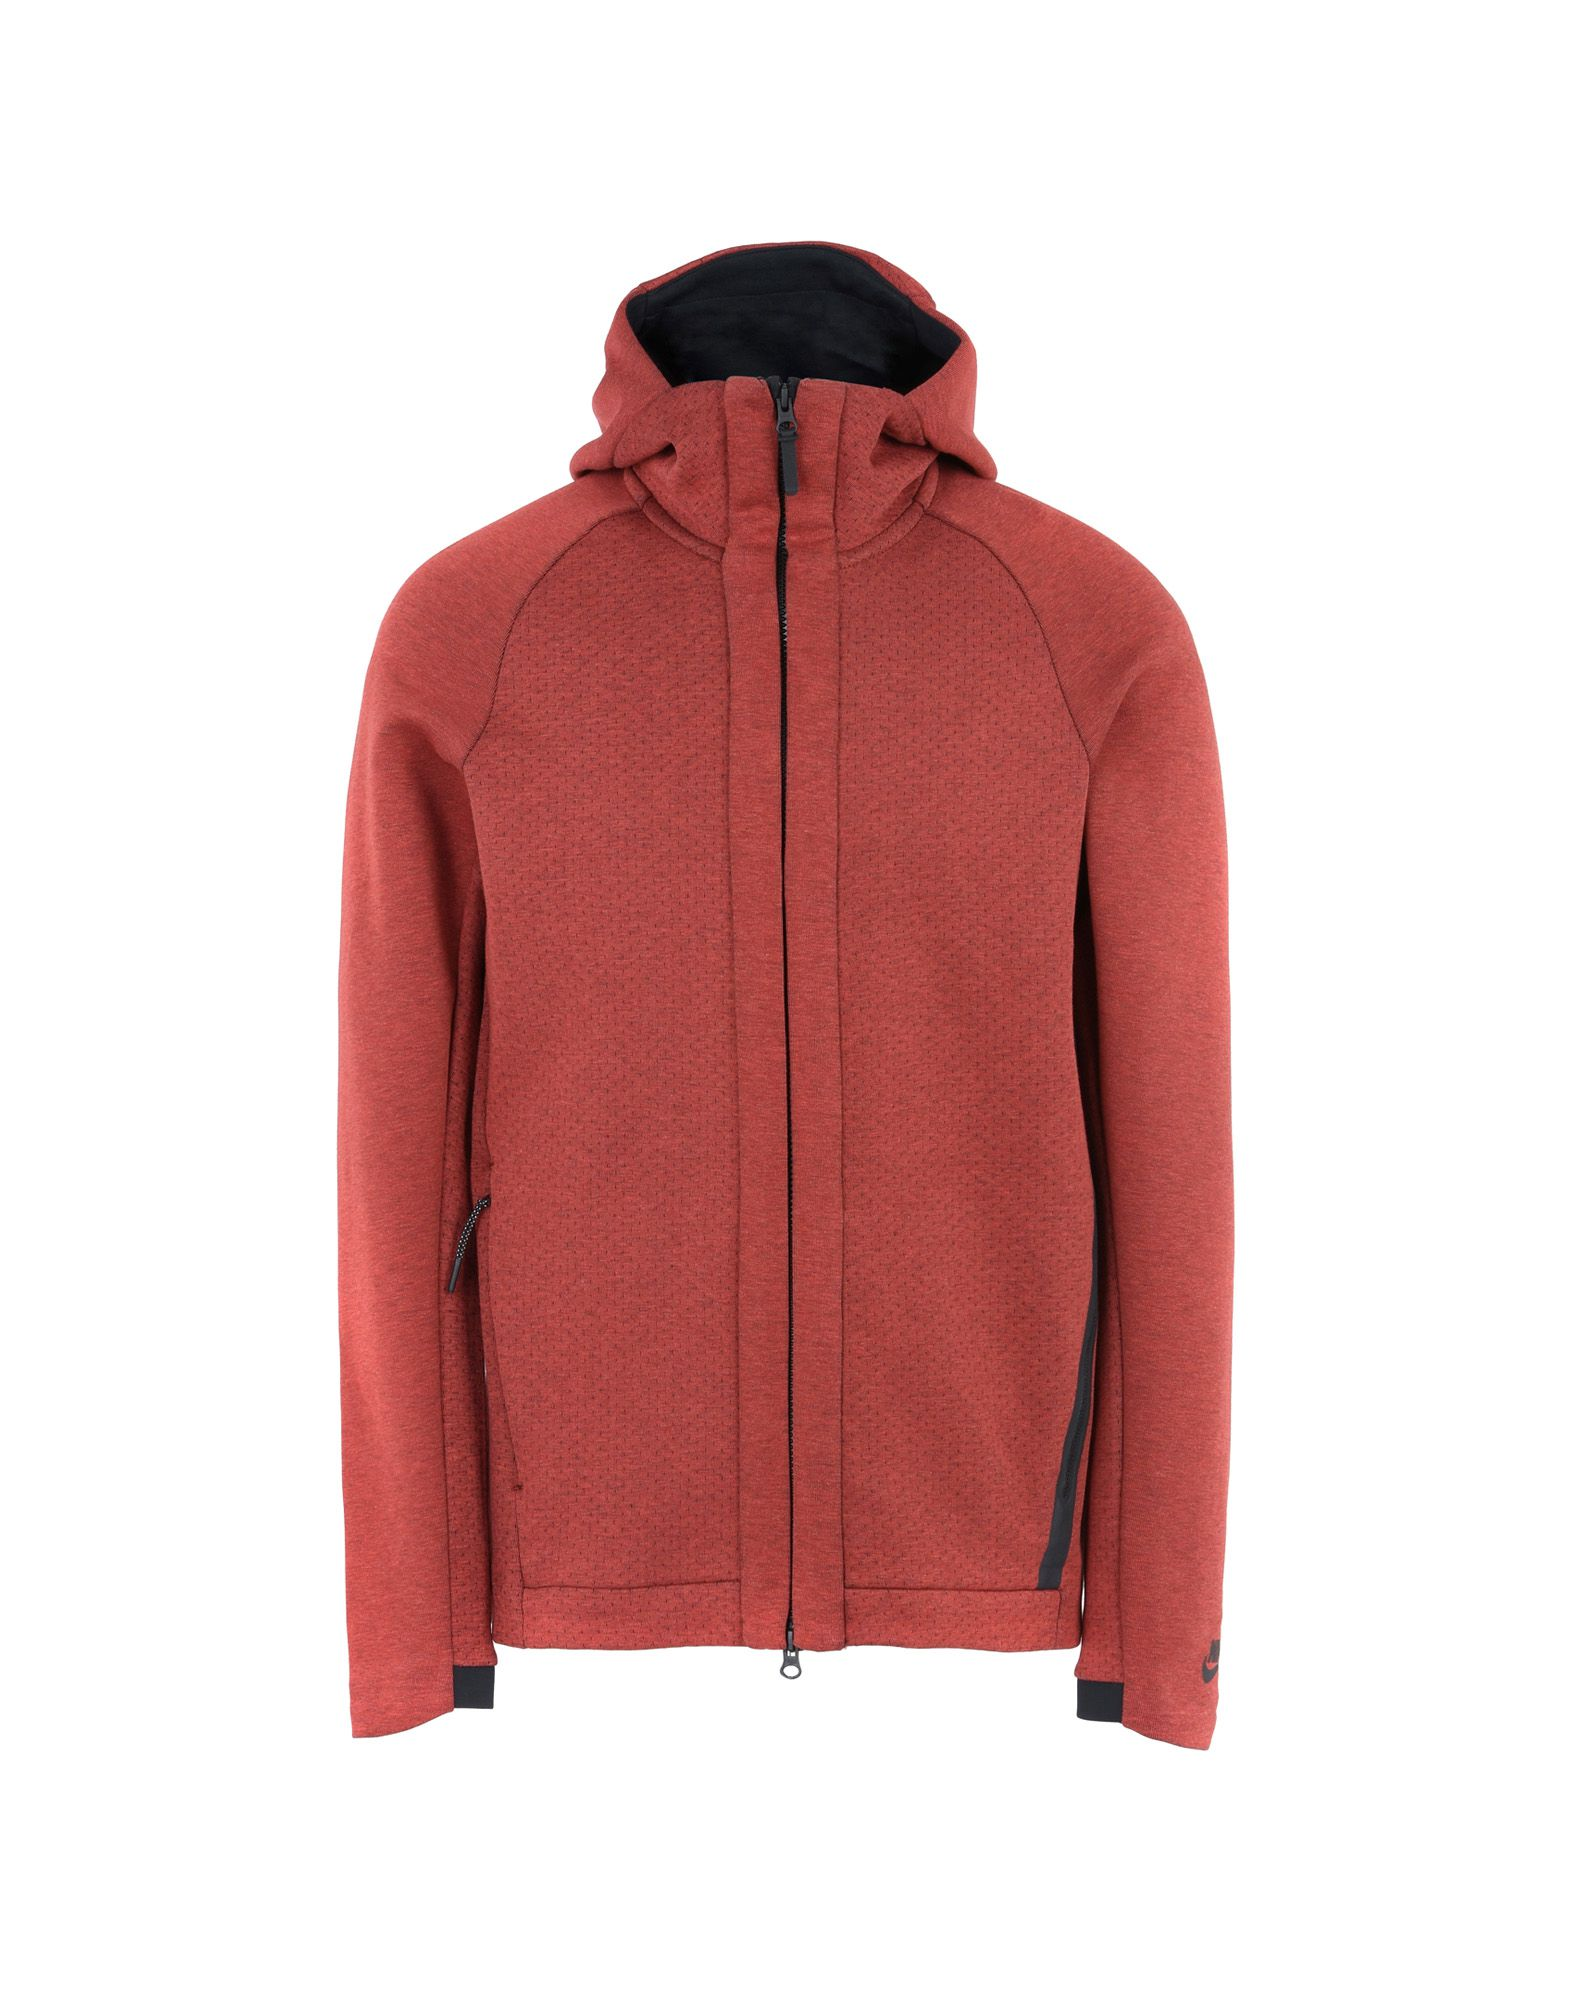 Felpa Nike   Tech   Hoodie Full Zip - Uomo - Acquista online su